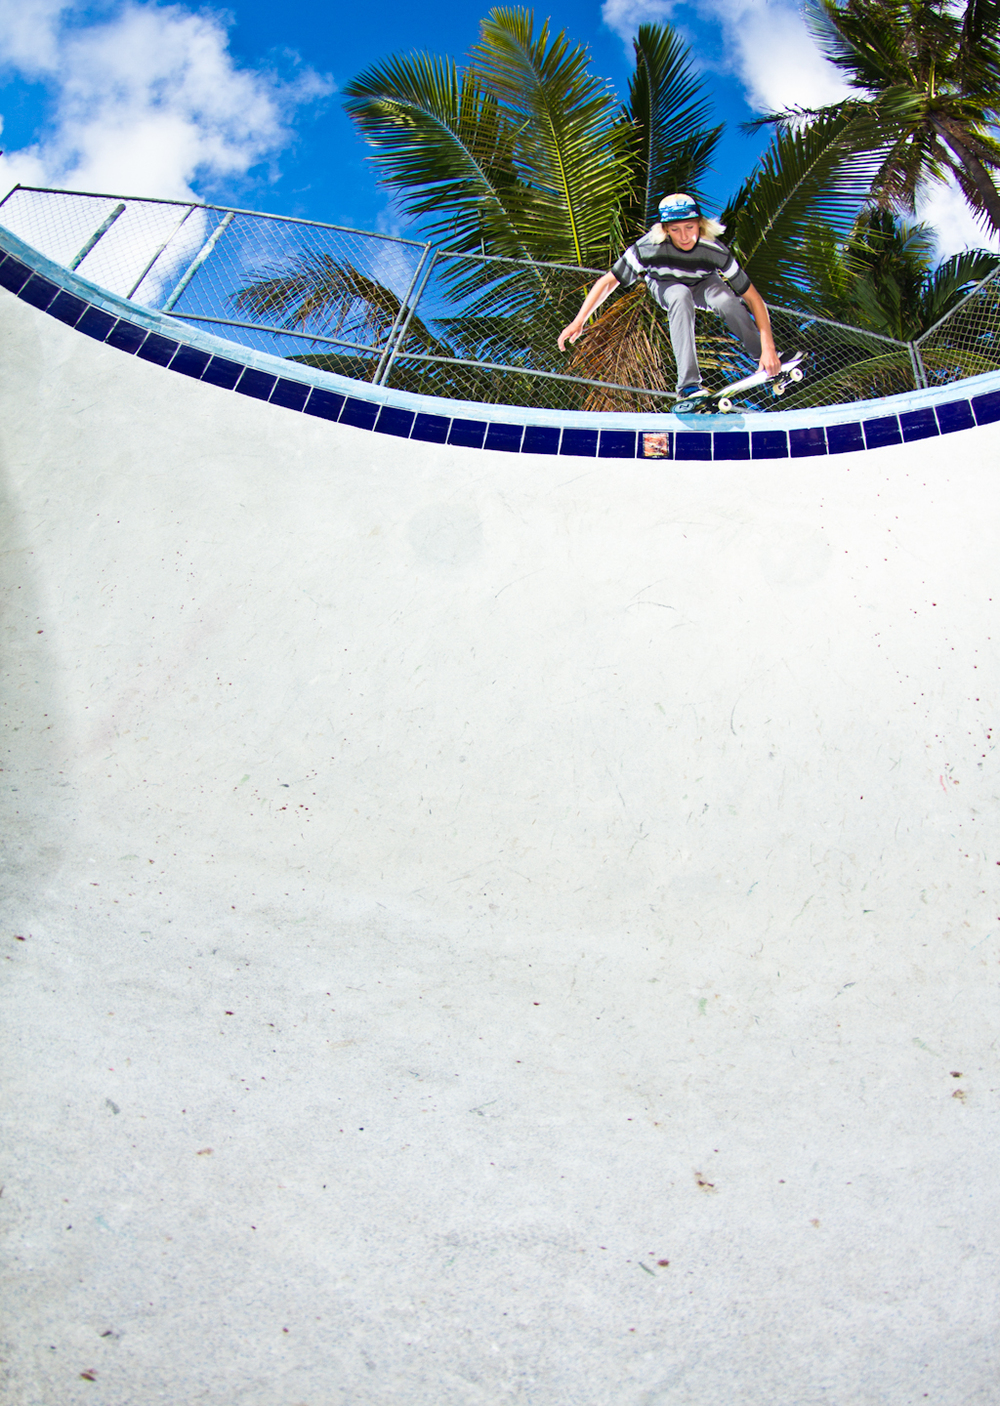 Titus Massinello | Backside Nosepick | South Beach, FL